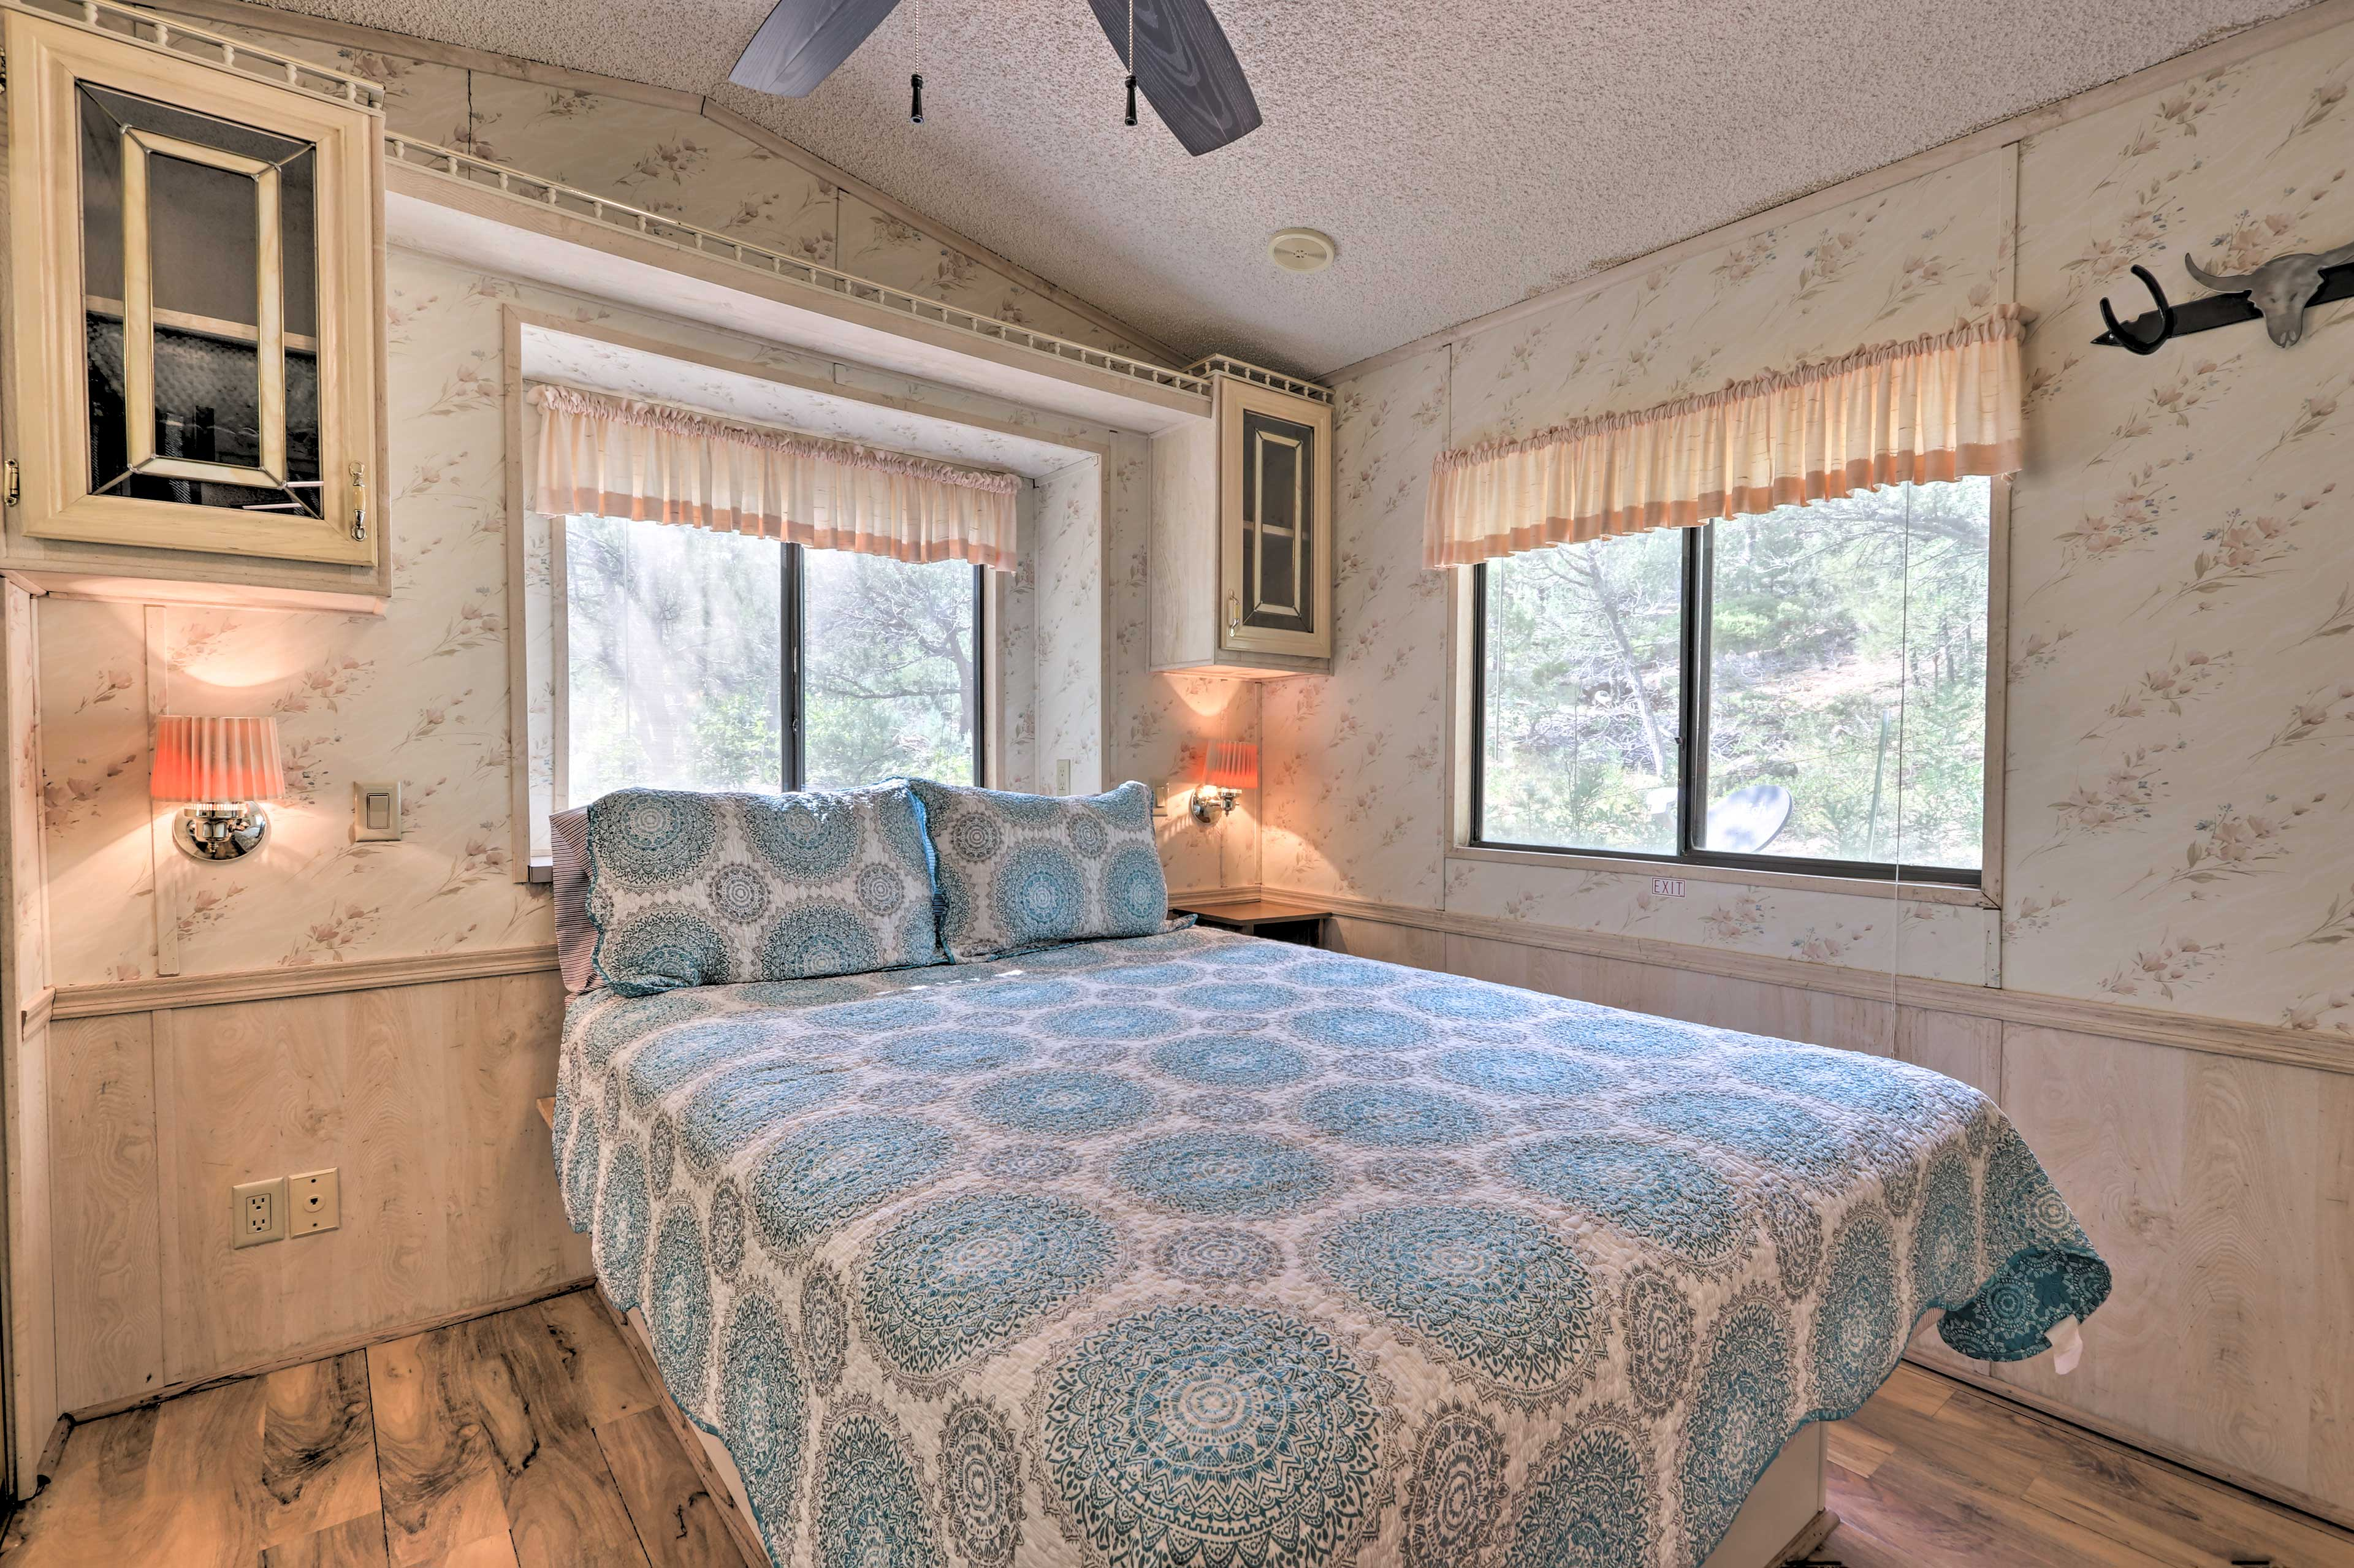 Both bedrooms are home to queen-sized beds.